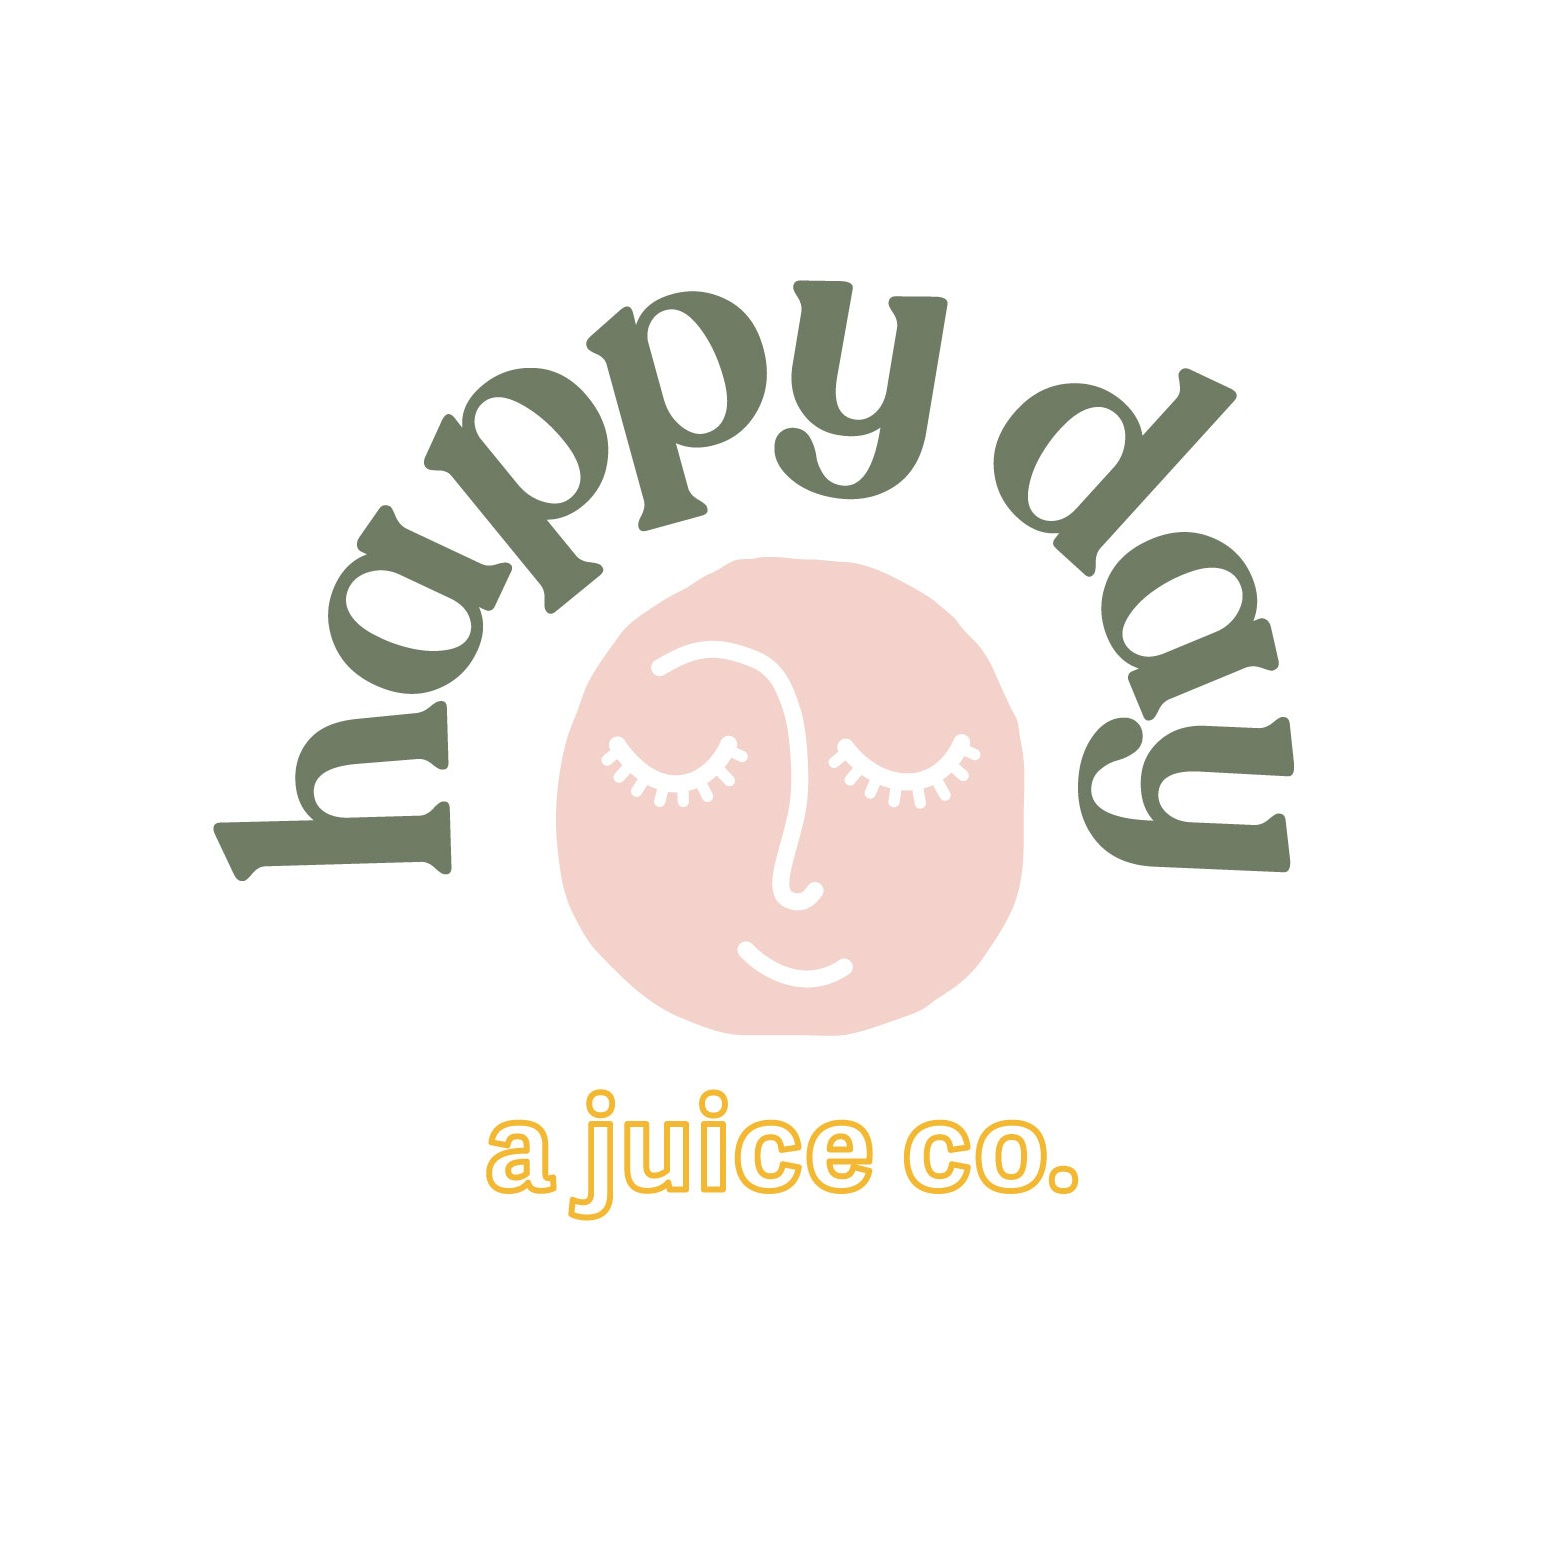 Happy Day Juice Co. Juice Bar Logo Design by Perspektiiv Design Co.